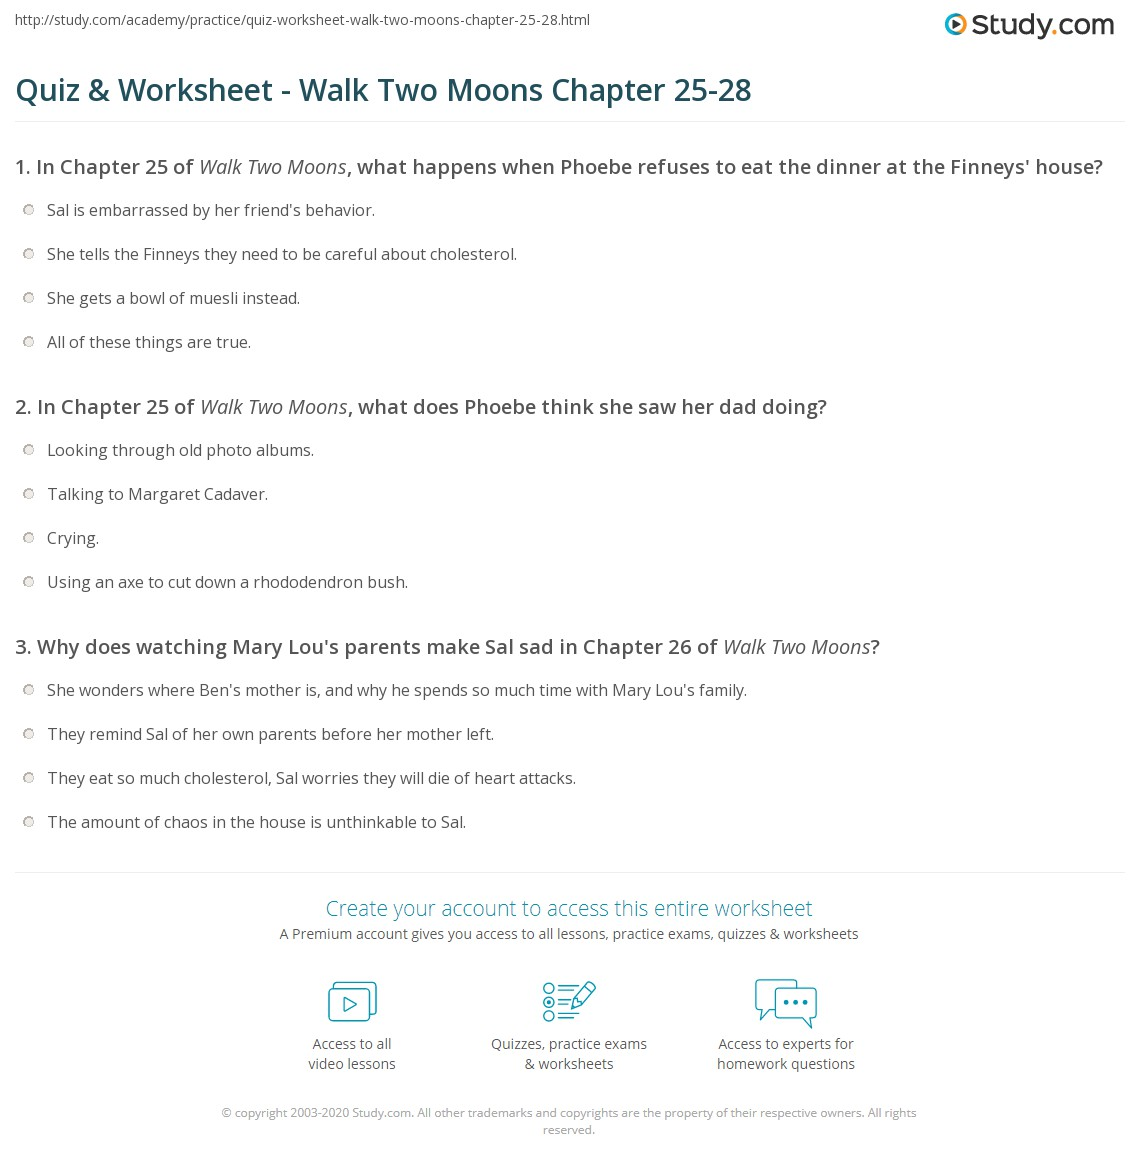 Worksheets Walk Two Moons Worksheets quiz worksheet walk two moons chapter 25 28 study com print summary chapters worksheet